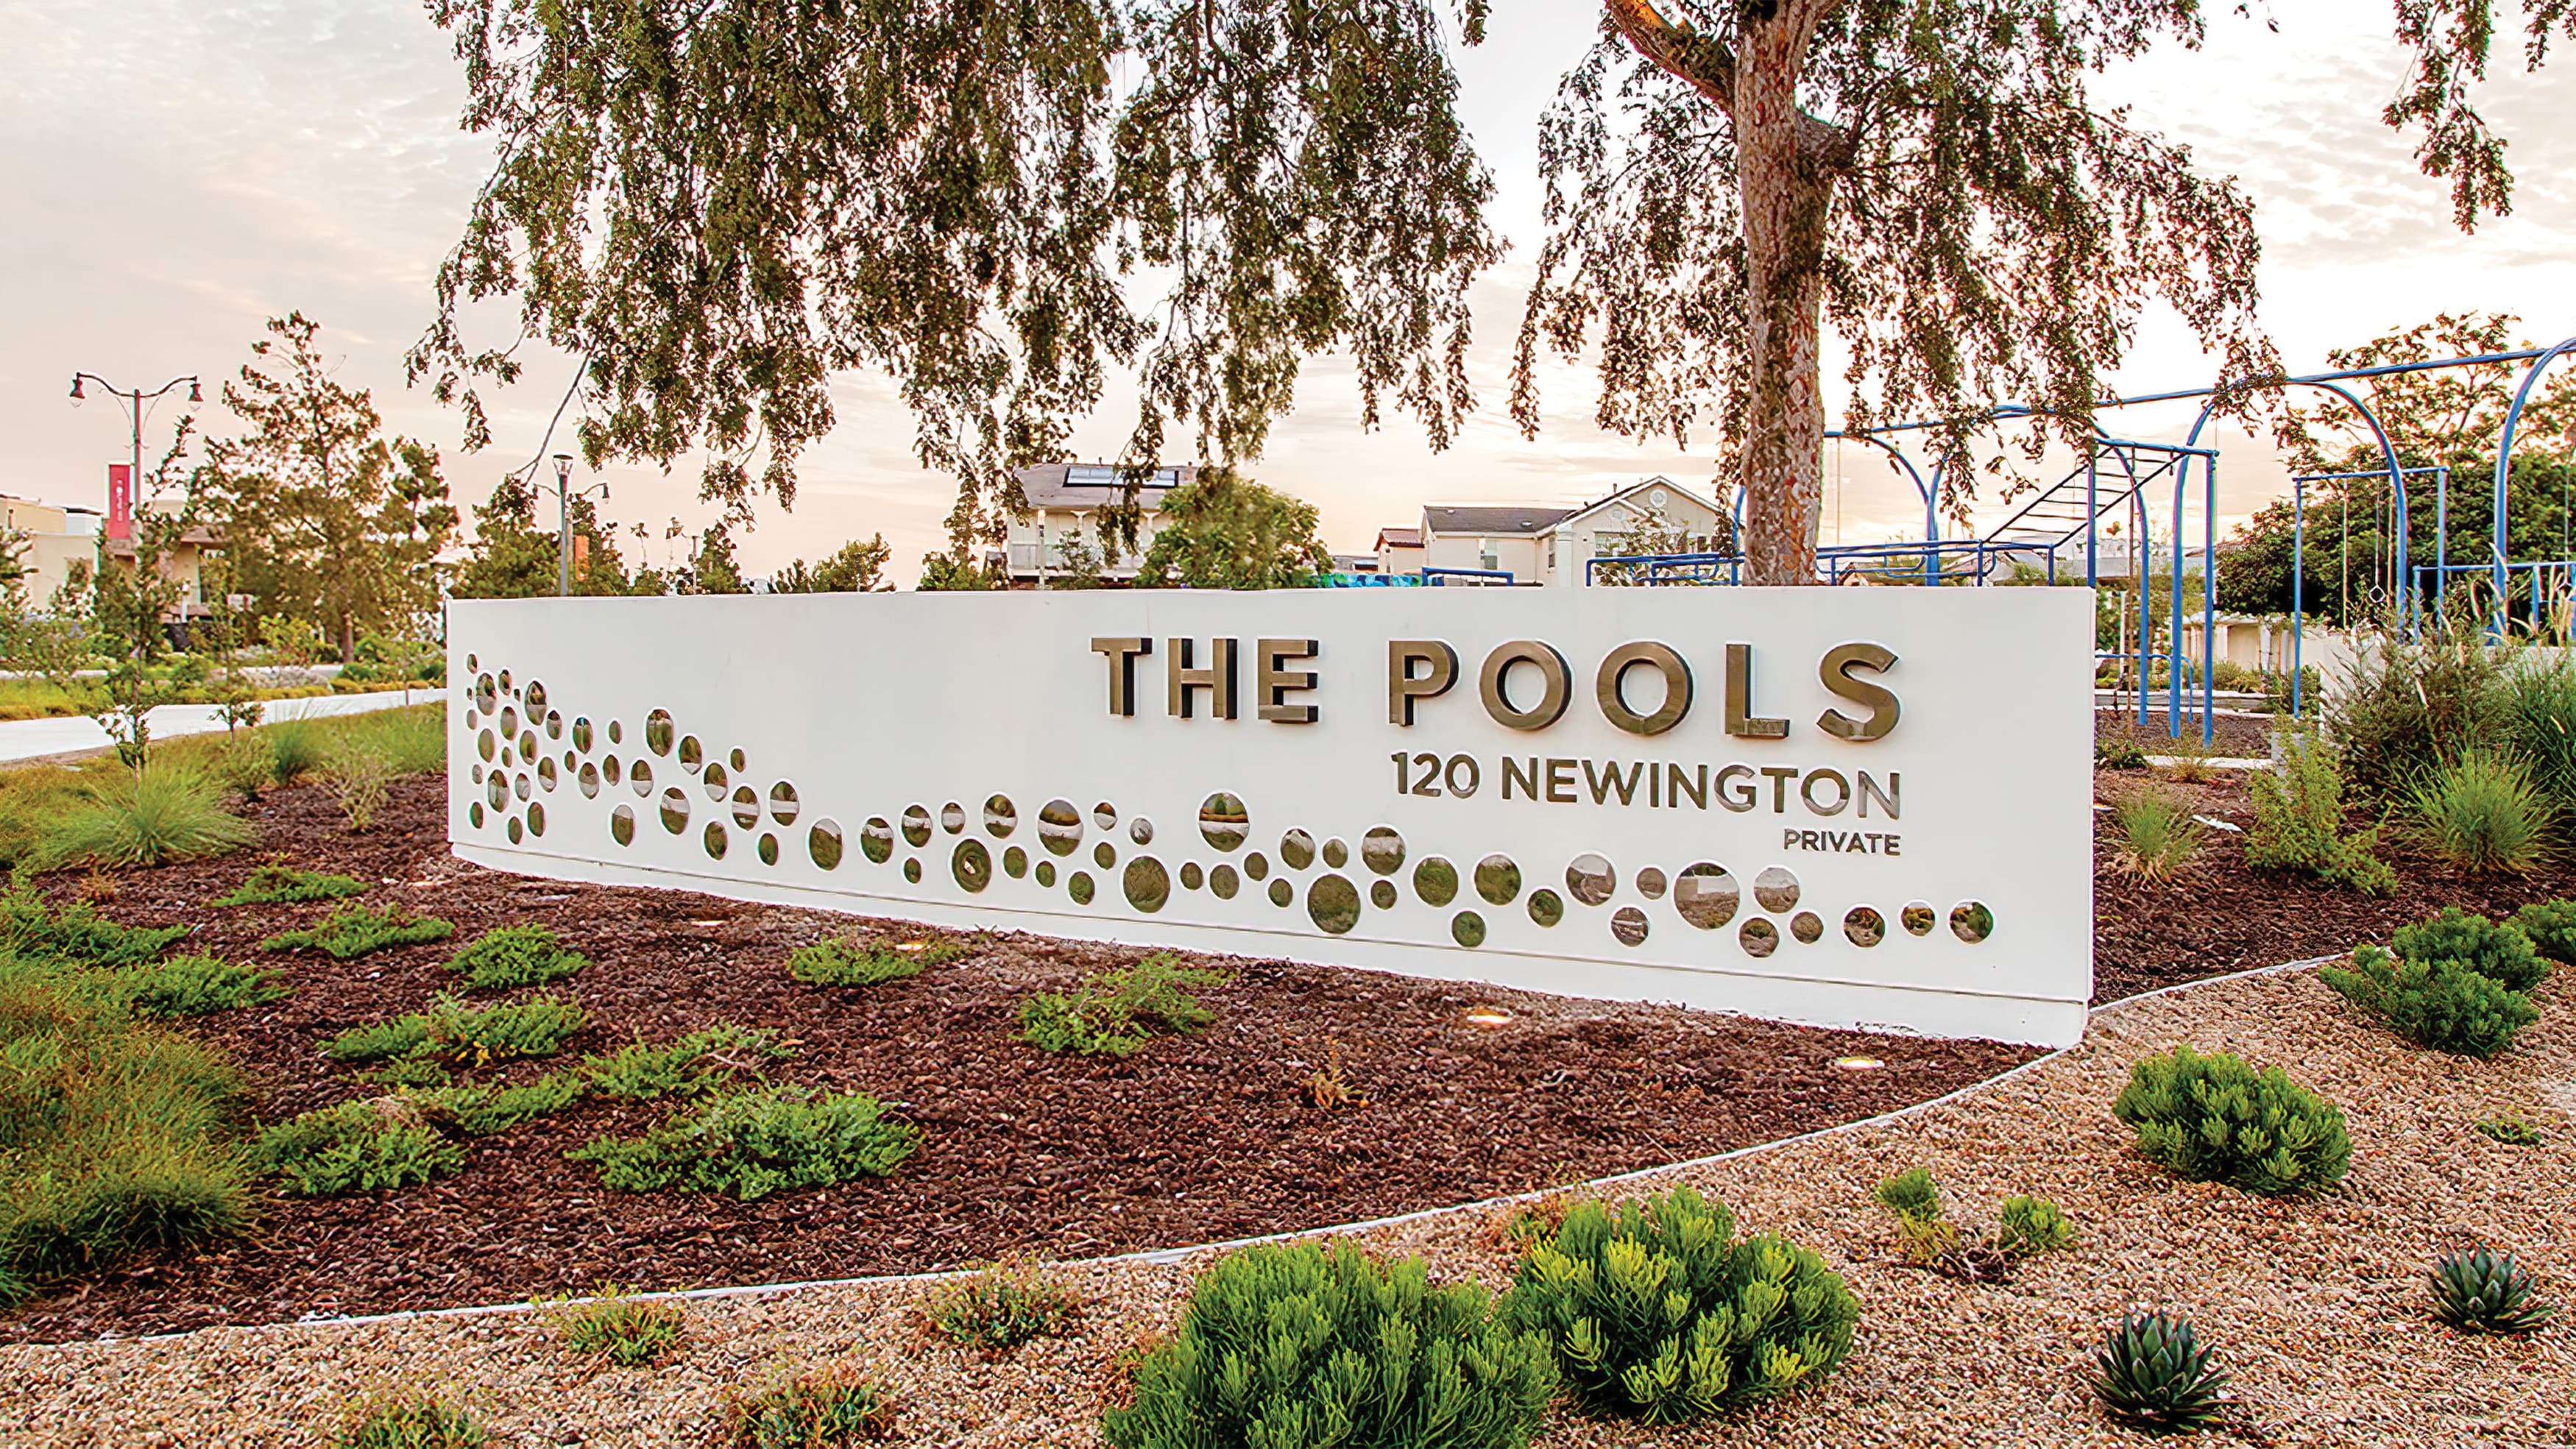 The Pools monument identity integrated in to the surrounding landscape